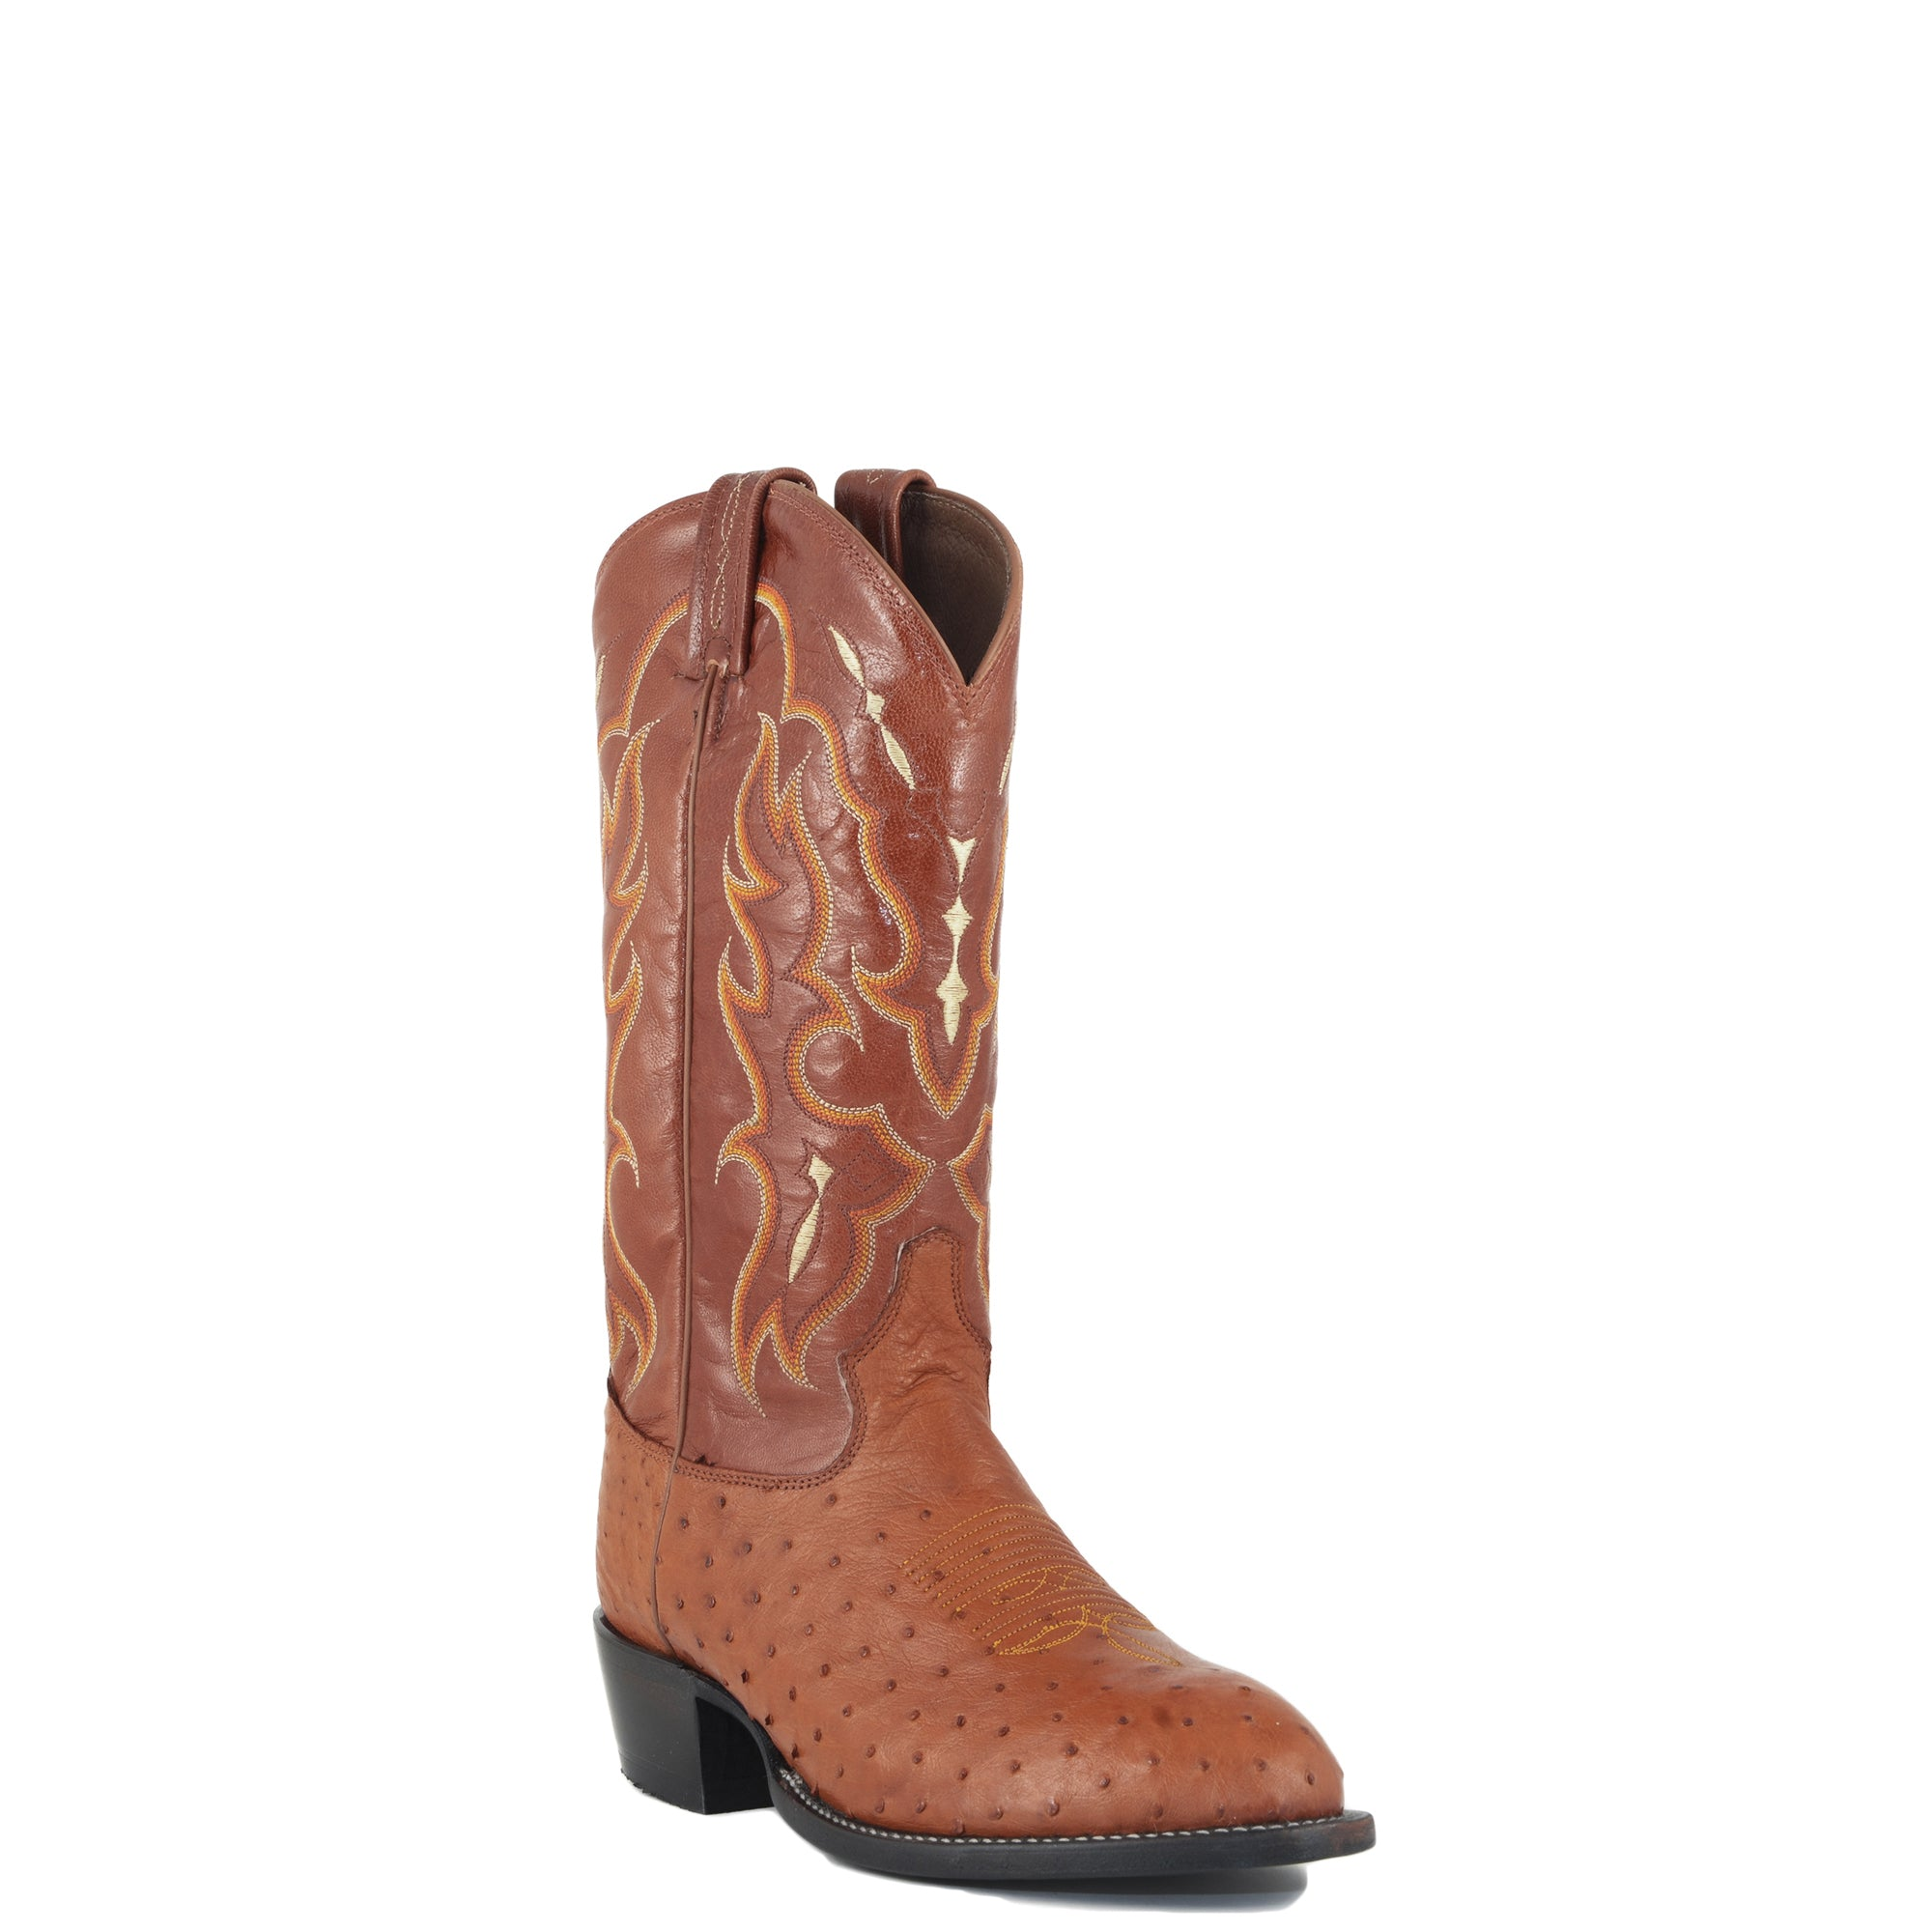 e1296553df4 Men's Tony Lama Peanut Brittle Smooth Ostrich Boots #CT873 – Allens ...